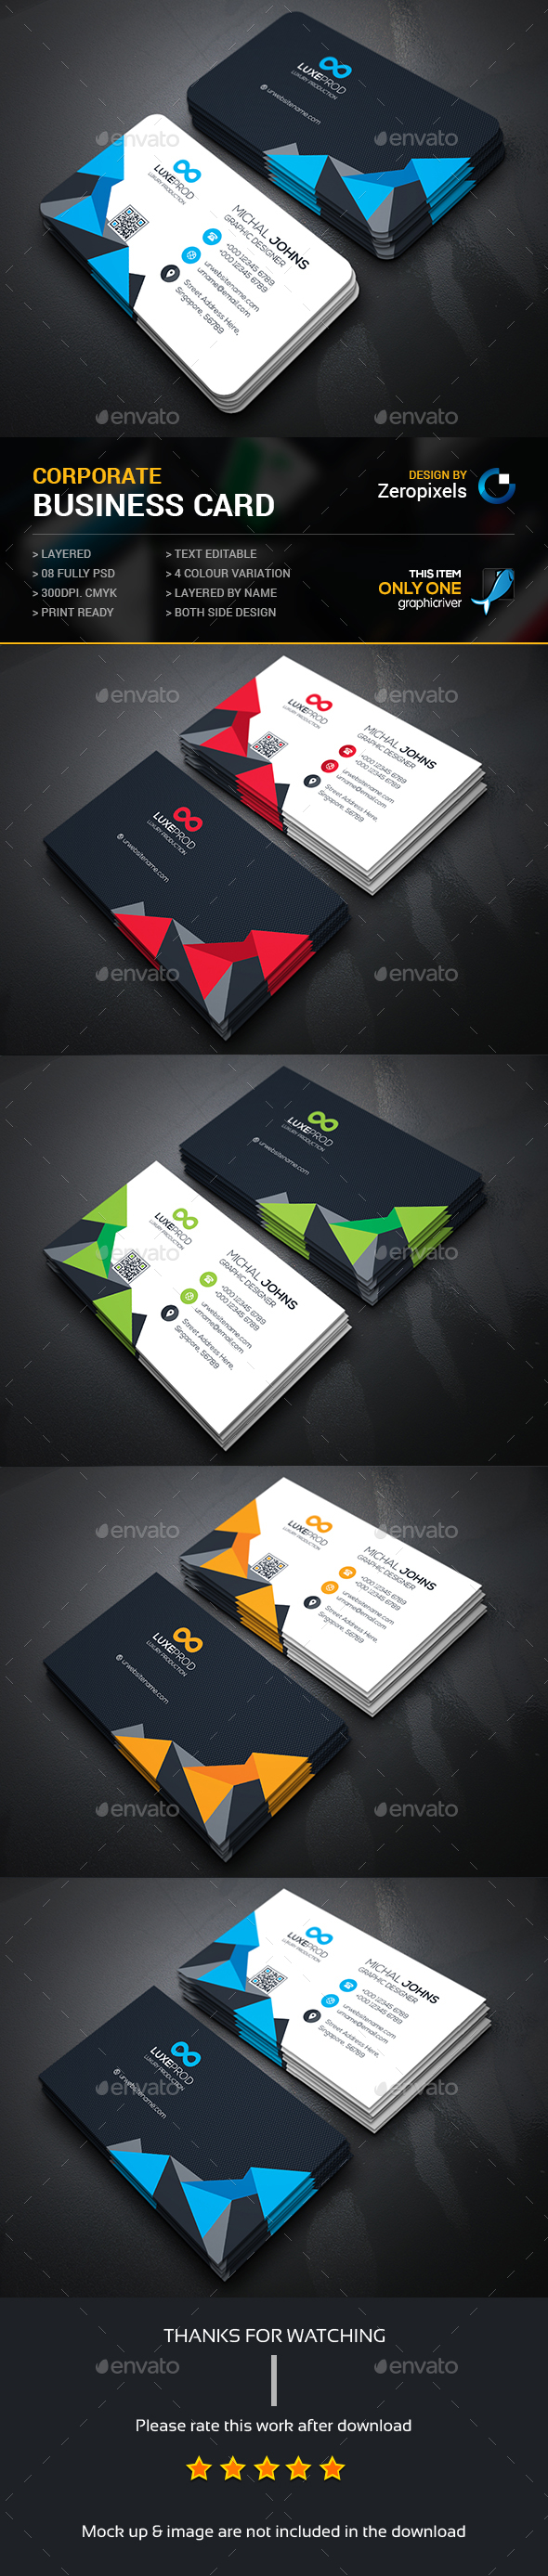 Business card template psd download here httpgraphicriver business card template psd download here httpgraphicriveritem business card15935790refksioks cheaphphosting Choice Image